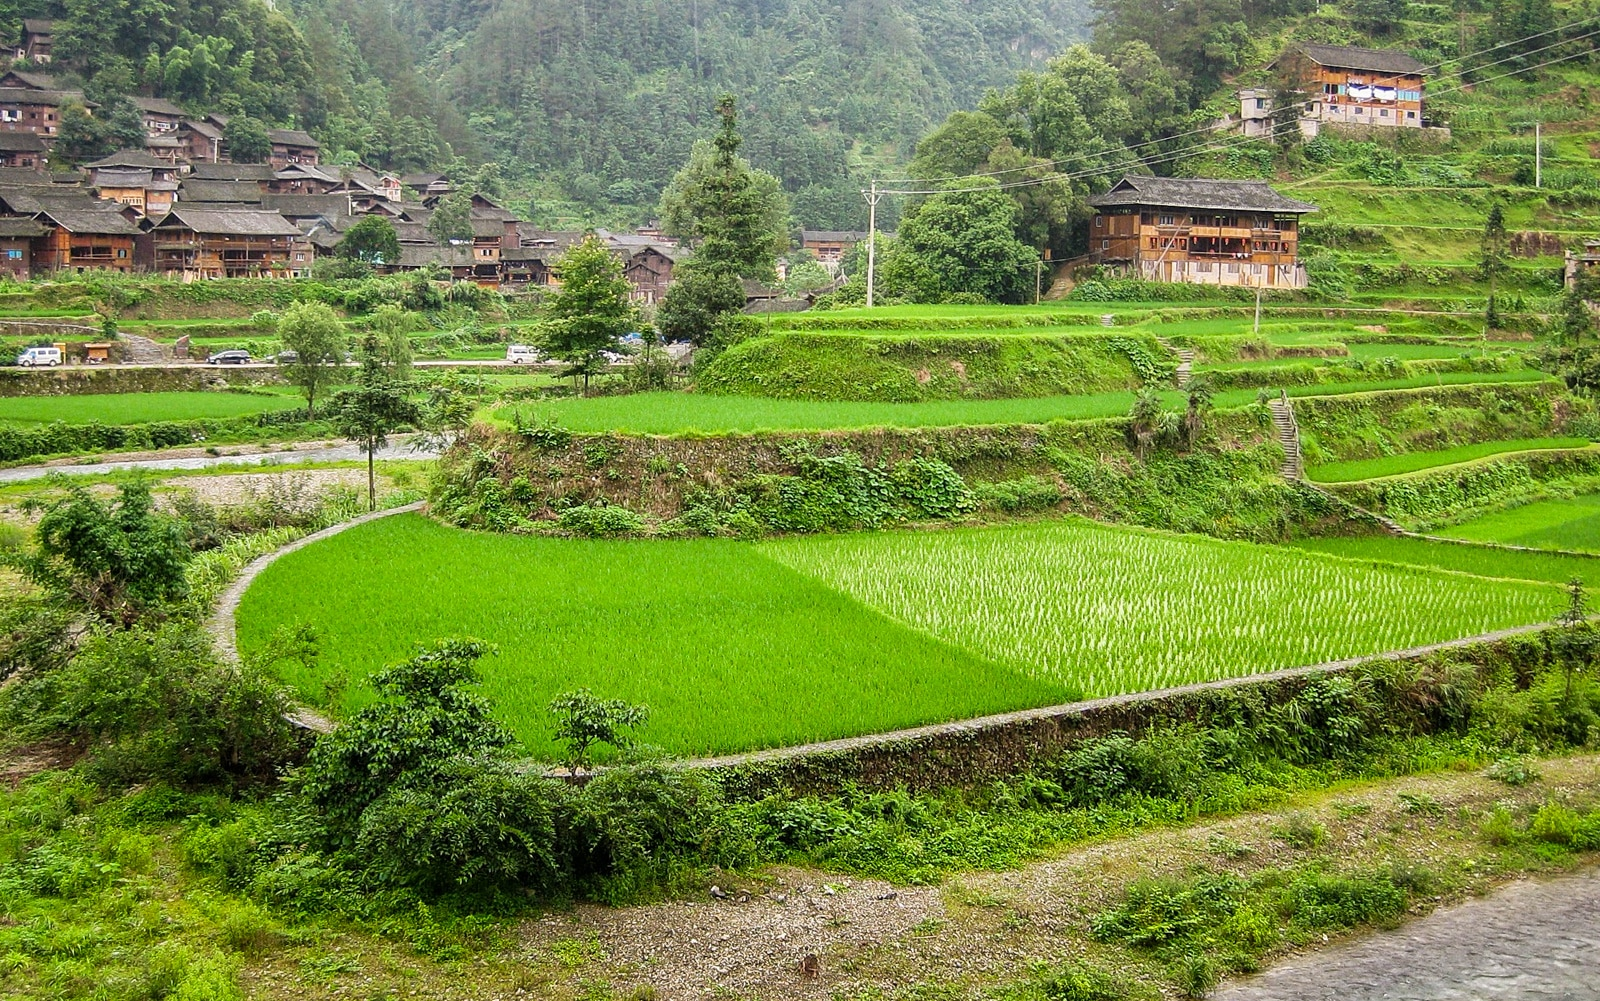 Exploring off the beaten track villages in Guizhou, China - Green rice paddies in Langde village